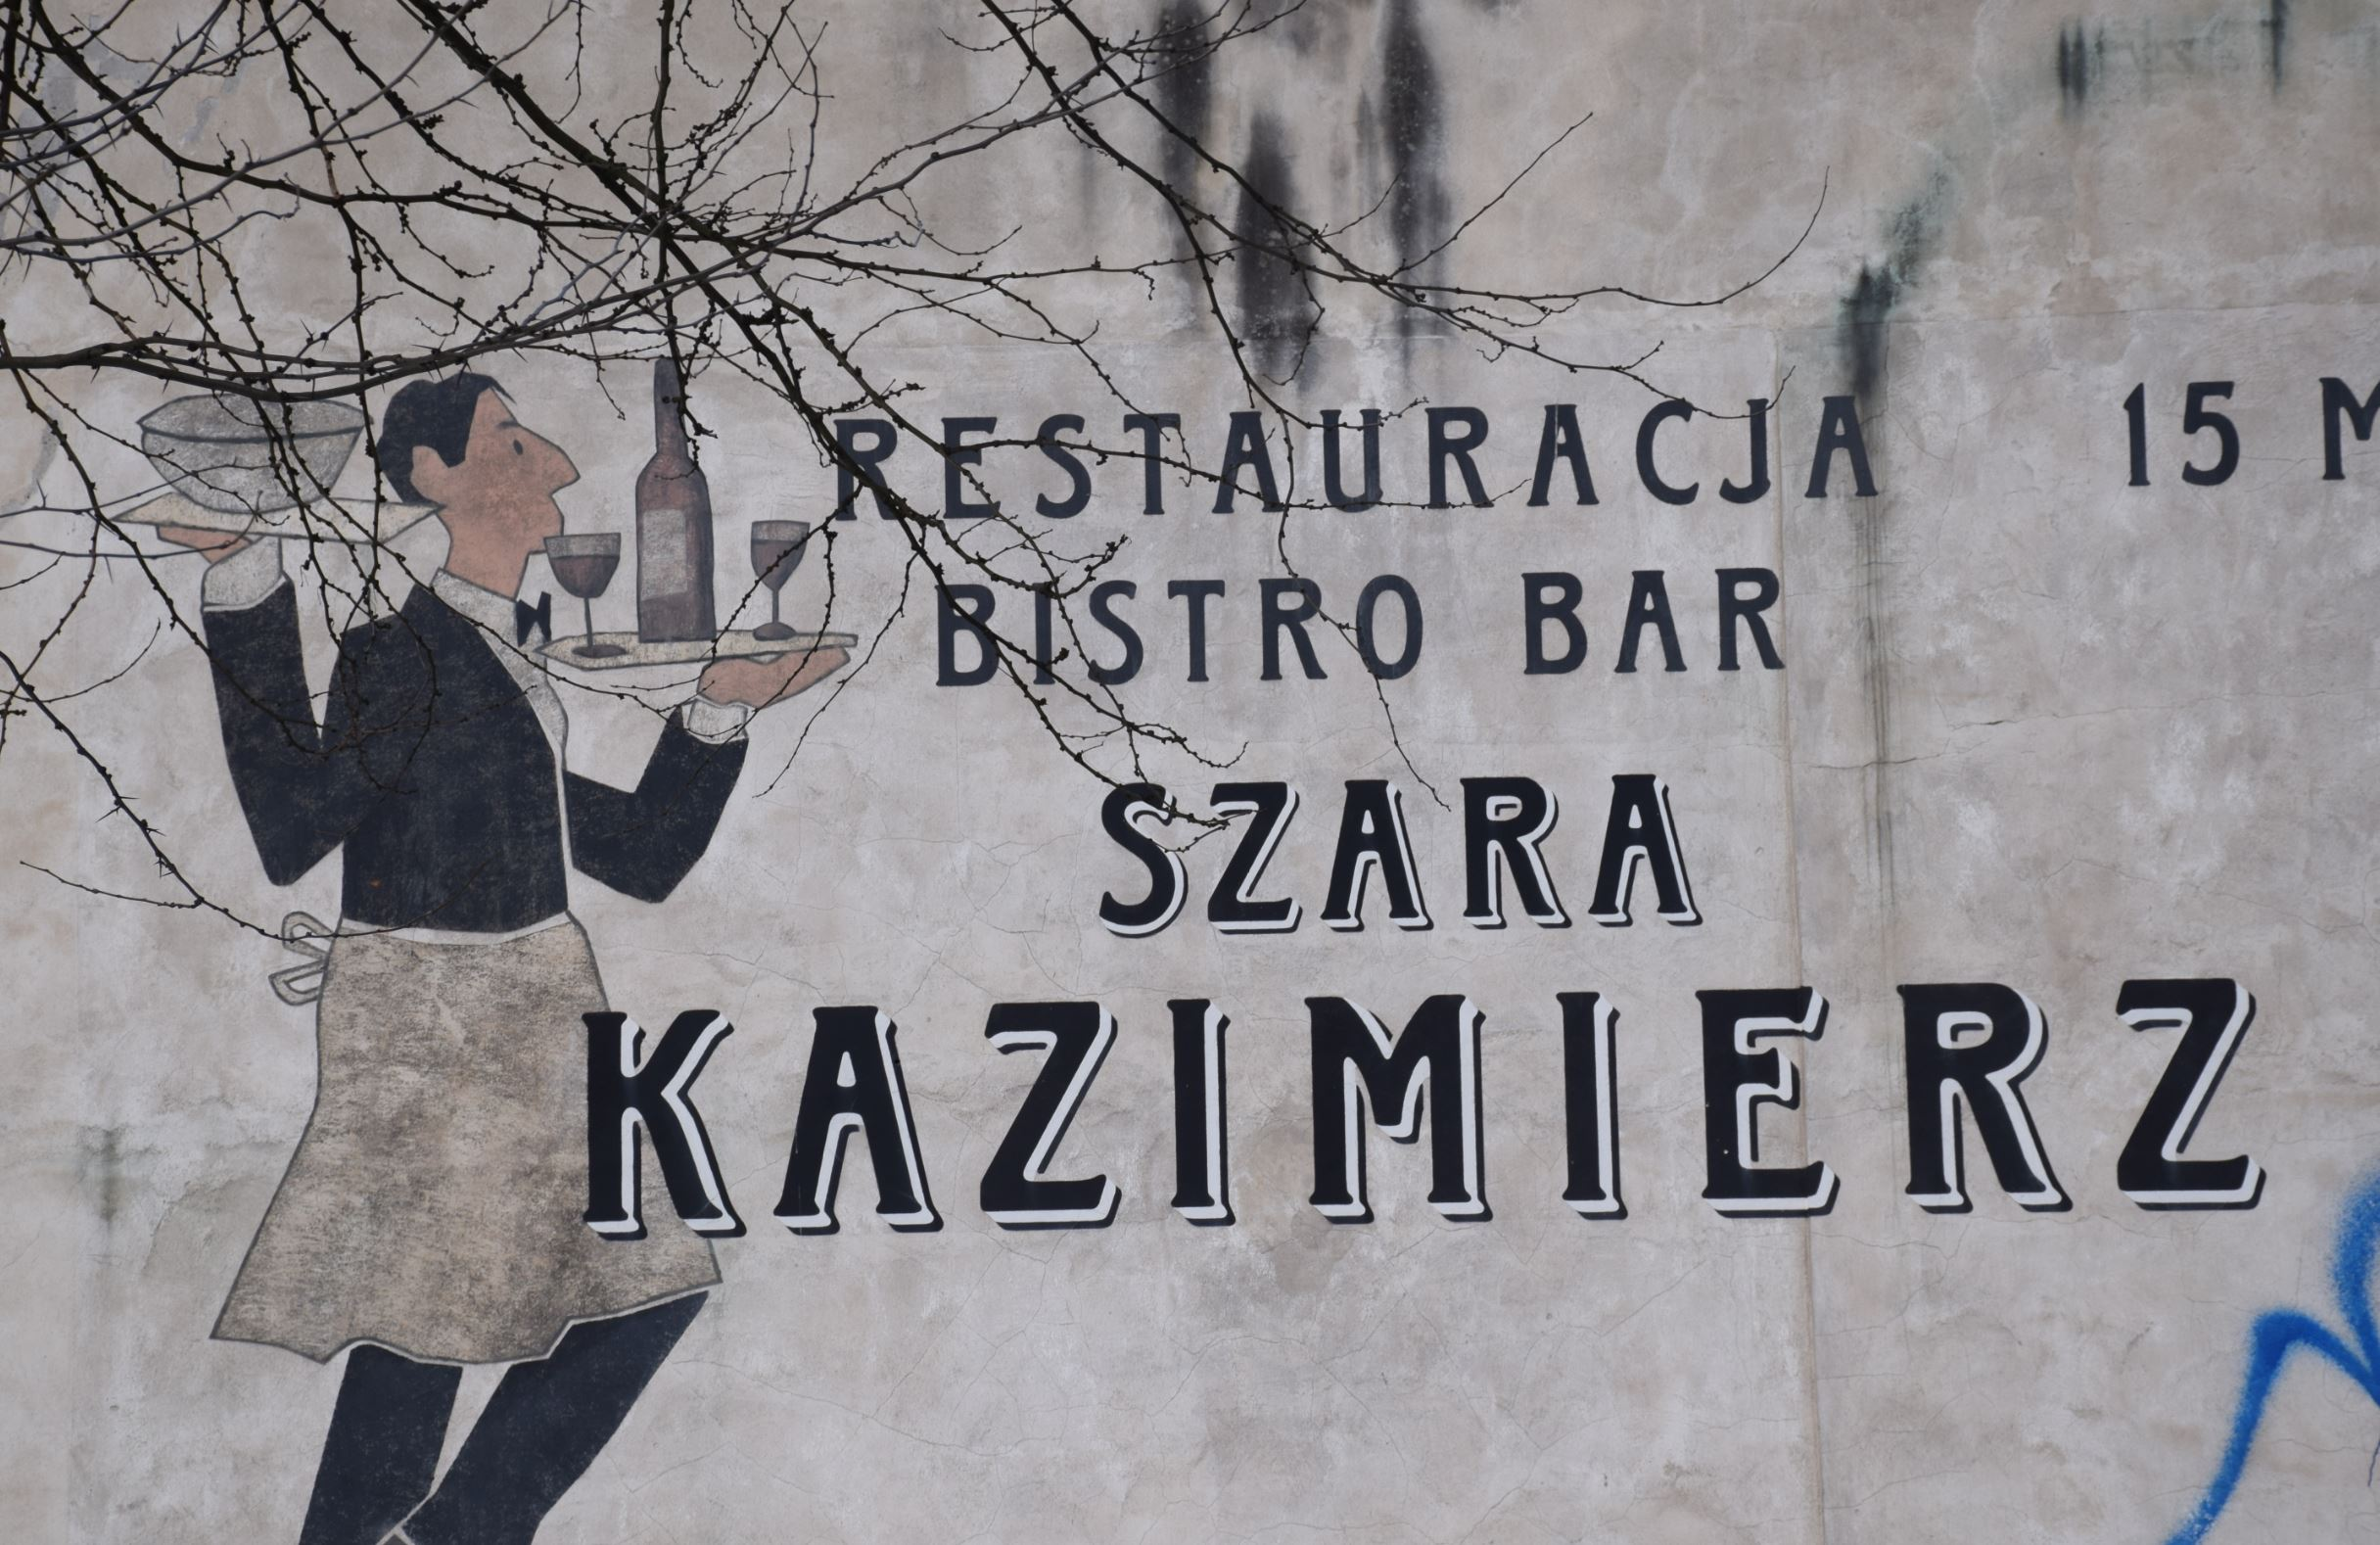 The ultimate guide to Kazimierz